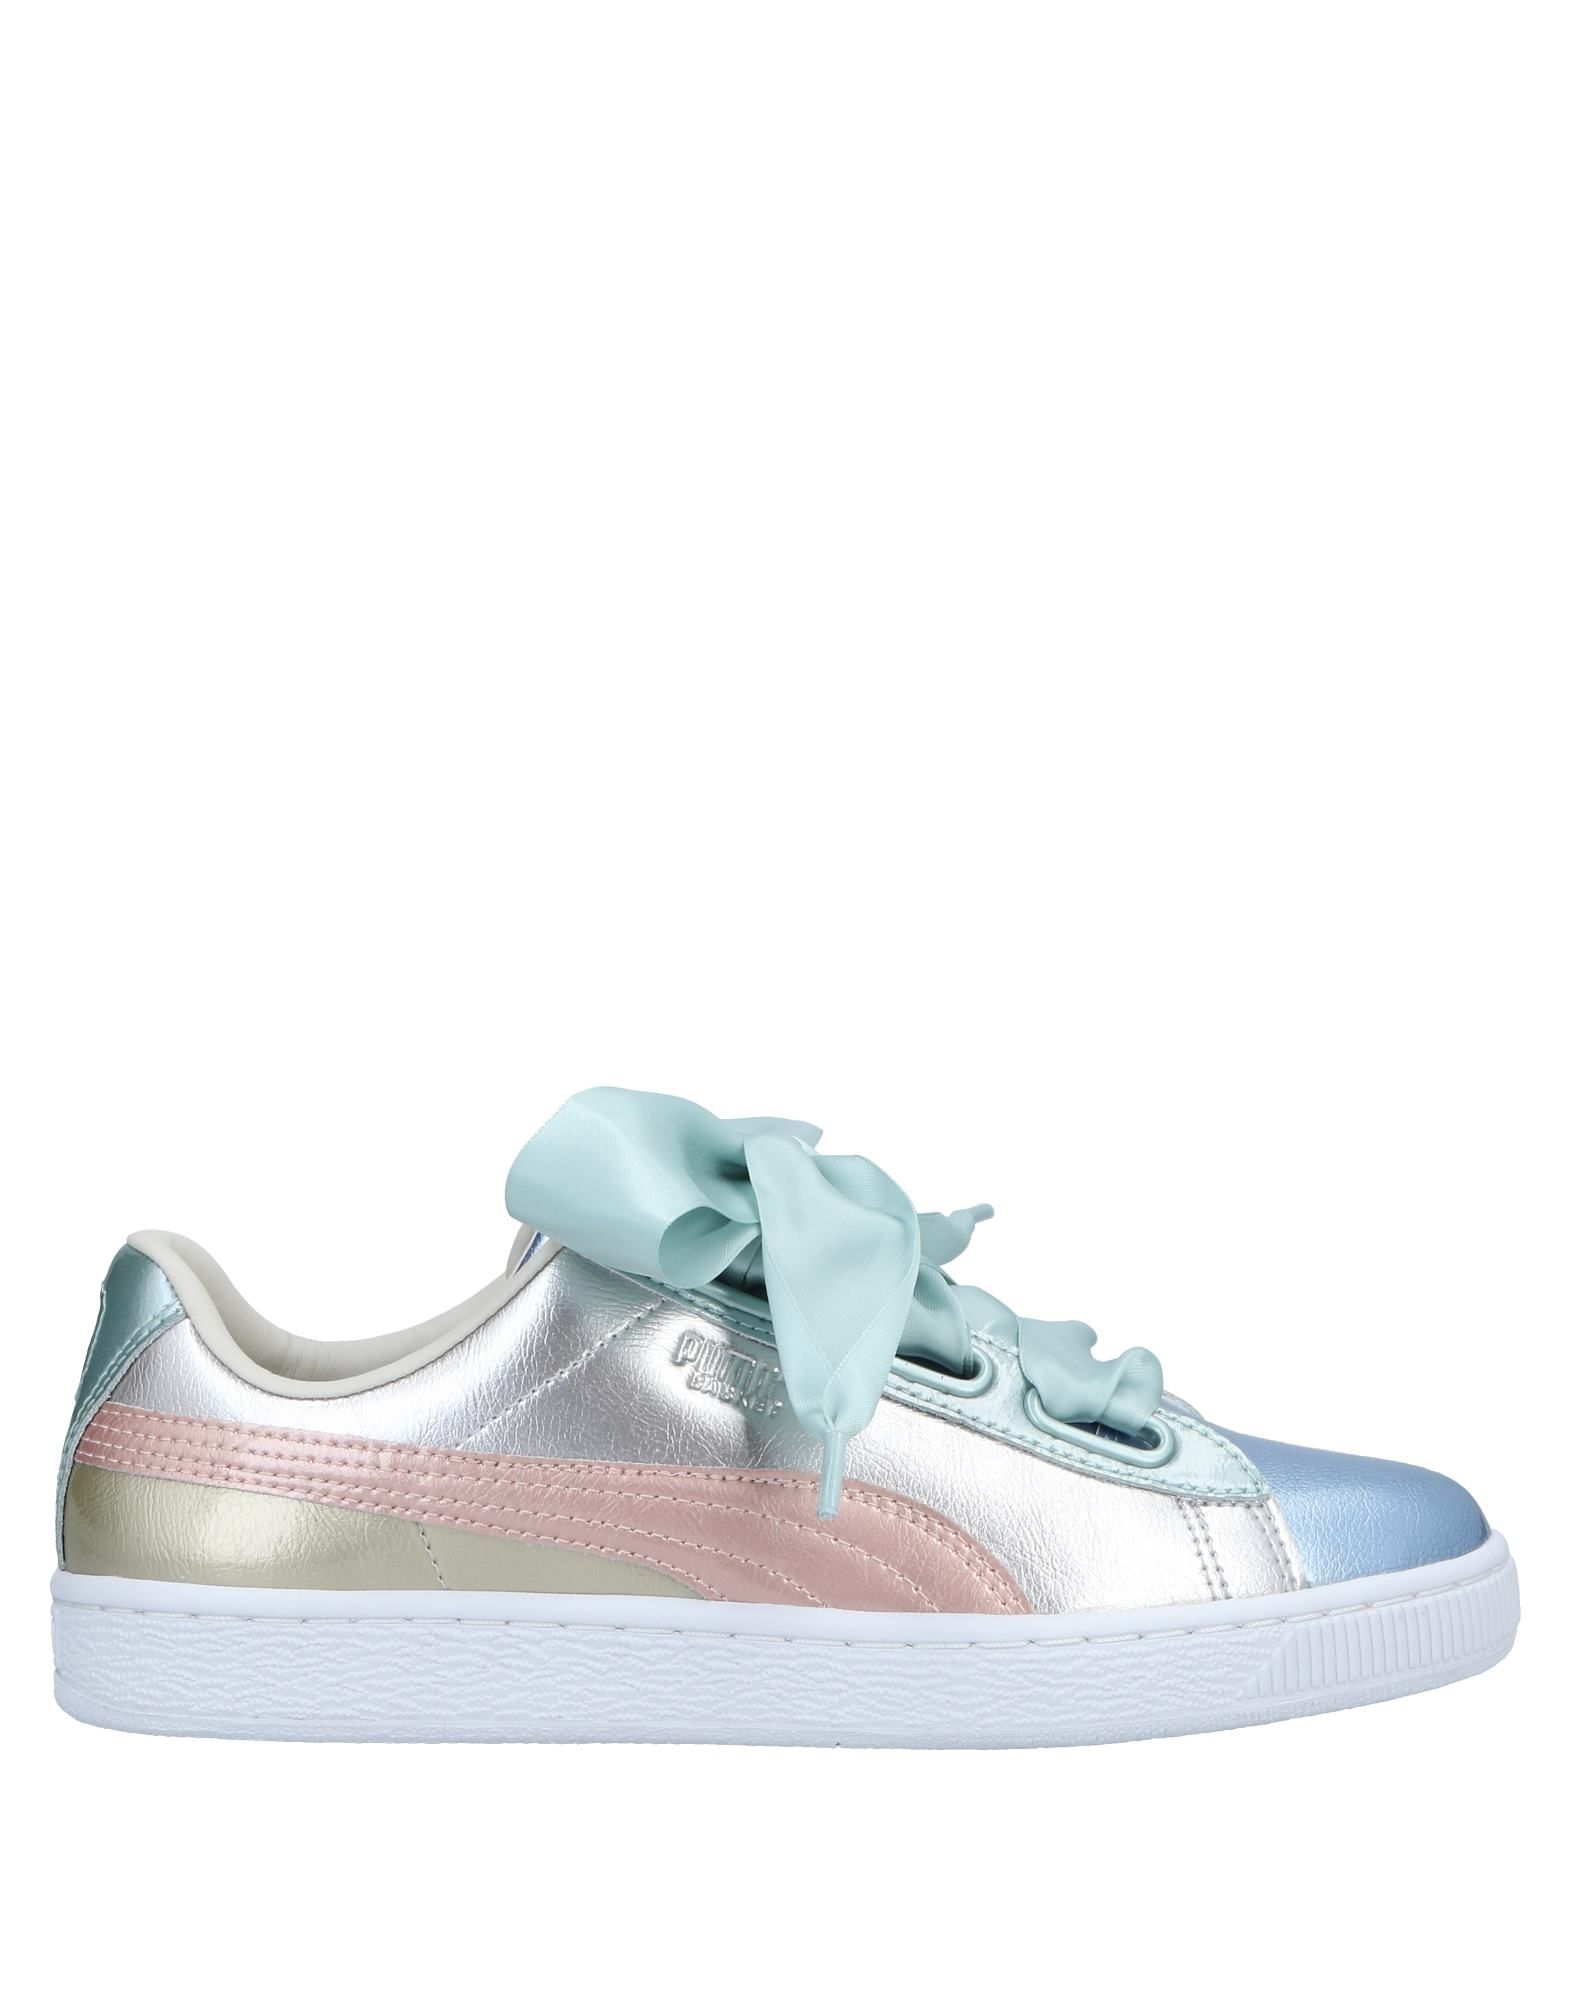 Puma Sneakers United - Women Puma Sneakers online on  United Sneakers Kingdom - 11559275KH c5db9a